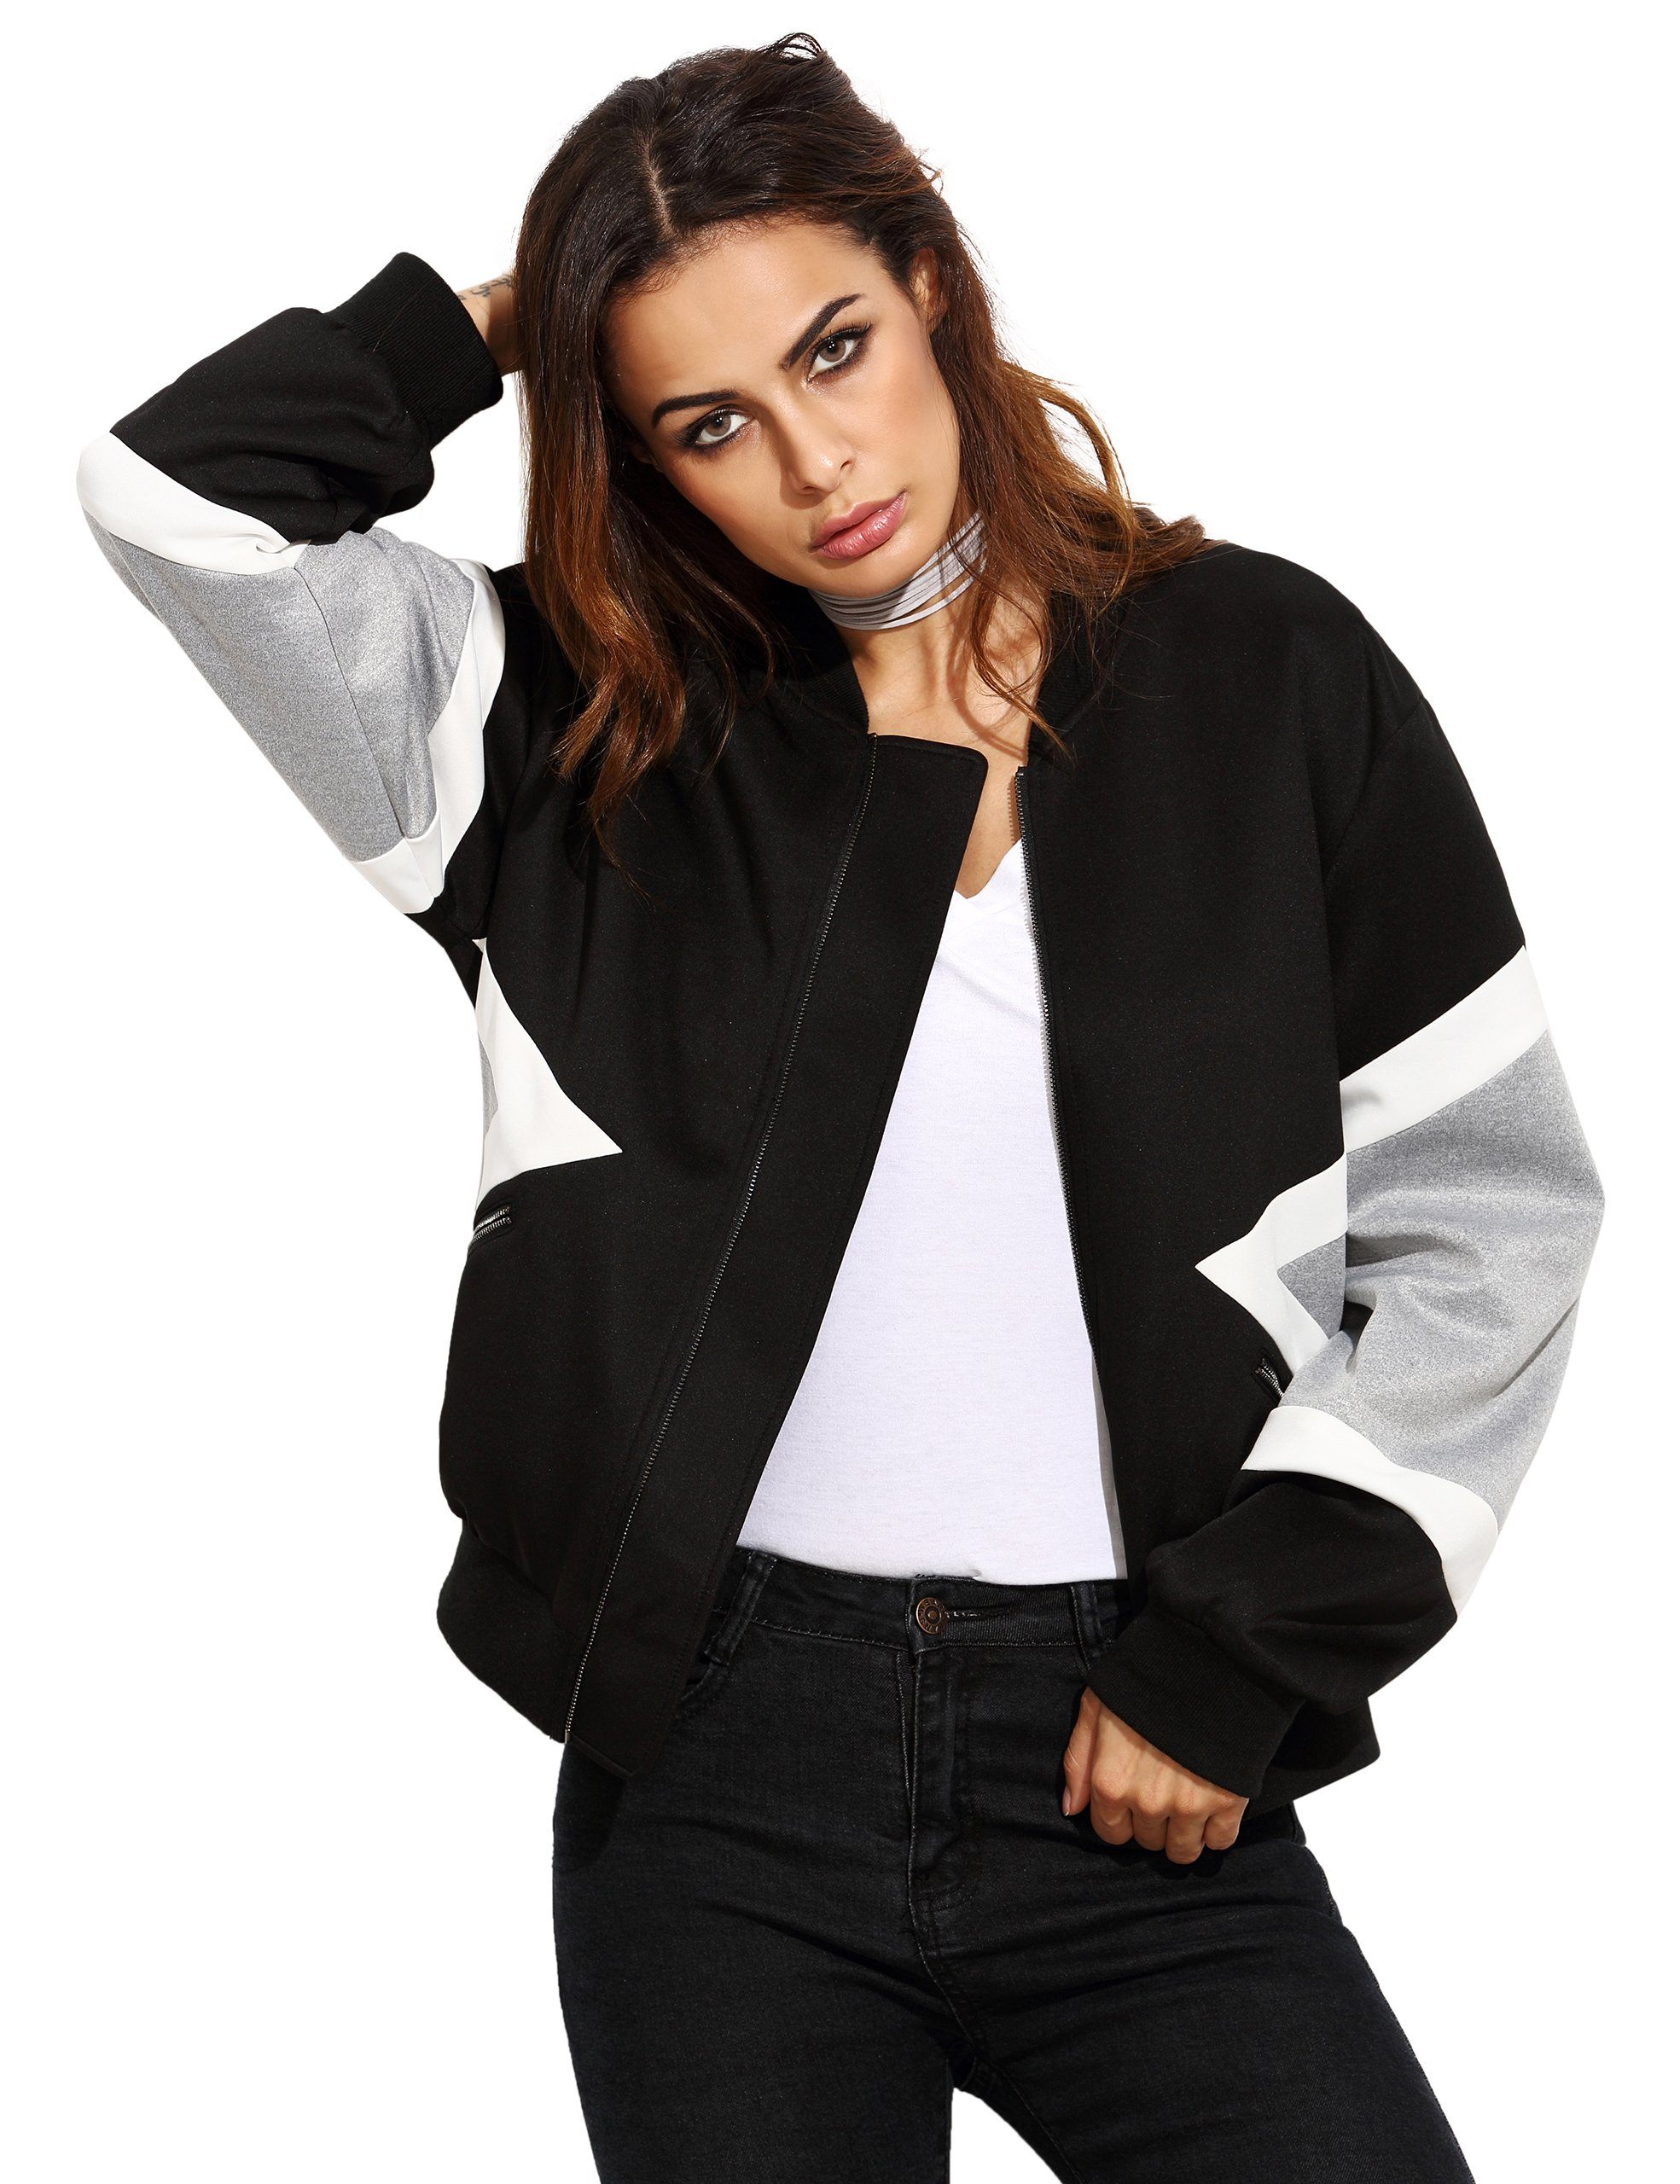 SheIn Women's Casual Long Sleeve Colorblock Track Top Zipper-Front Bomber Jacket Small Black